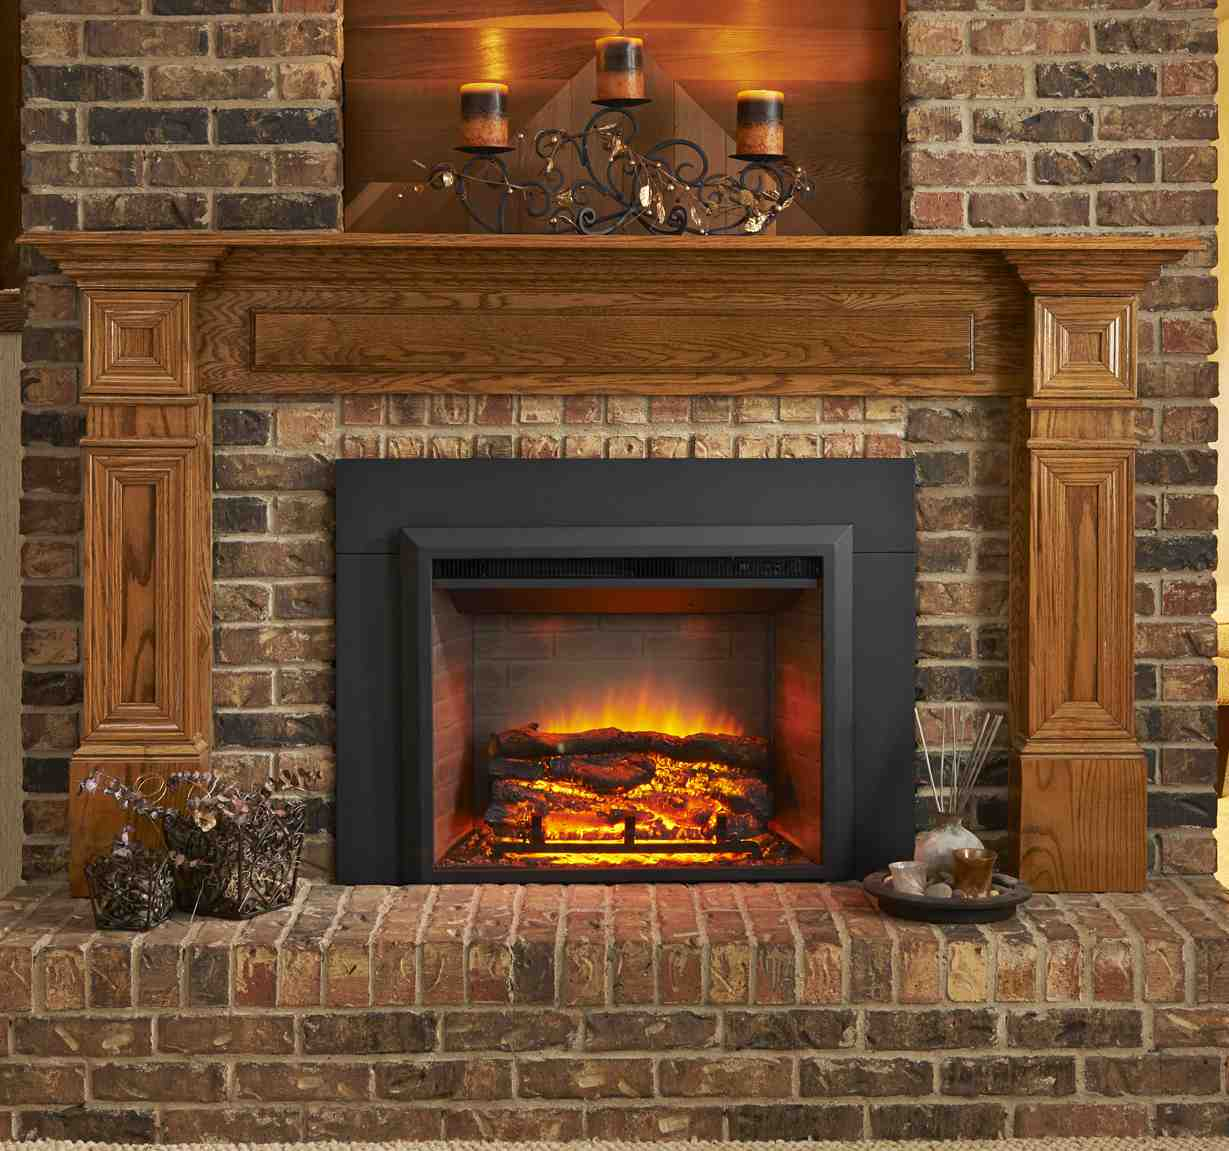 New Gallery Electric Fireplace Insert Adds Instant